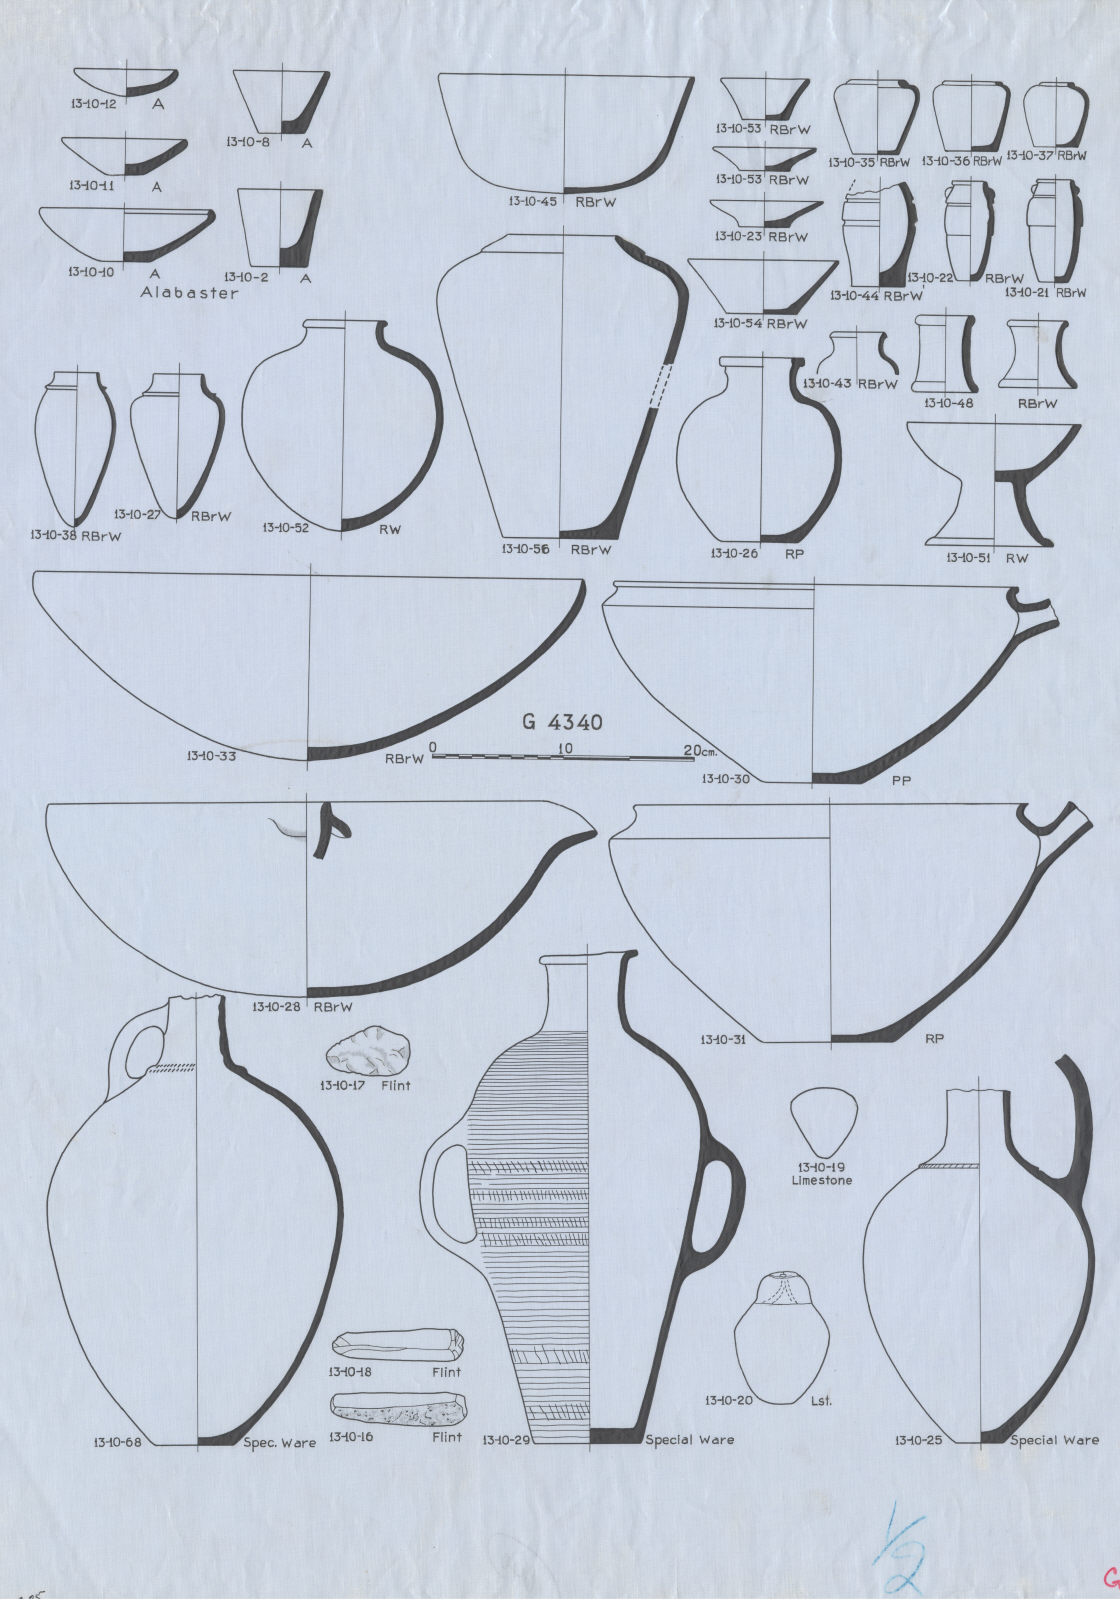 Drawings: G 4340: objects